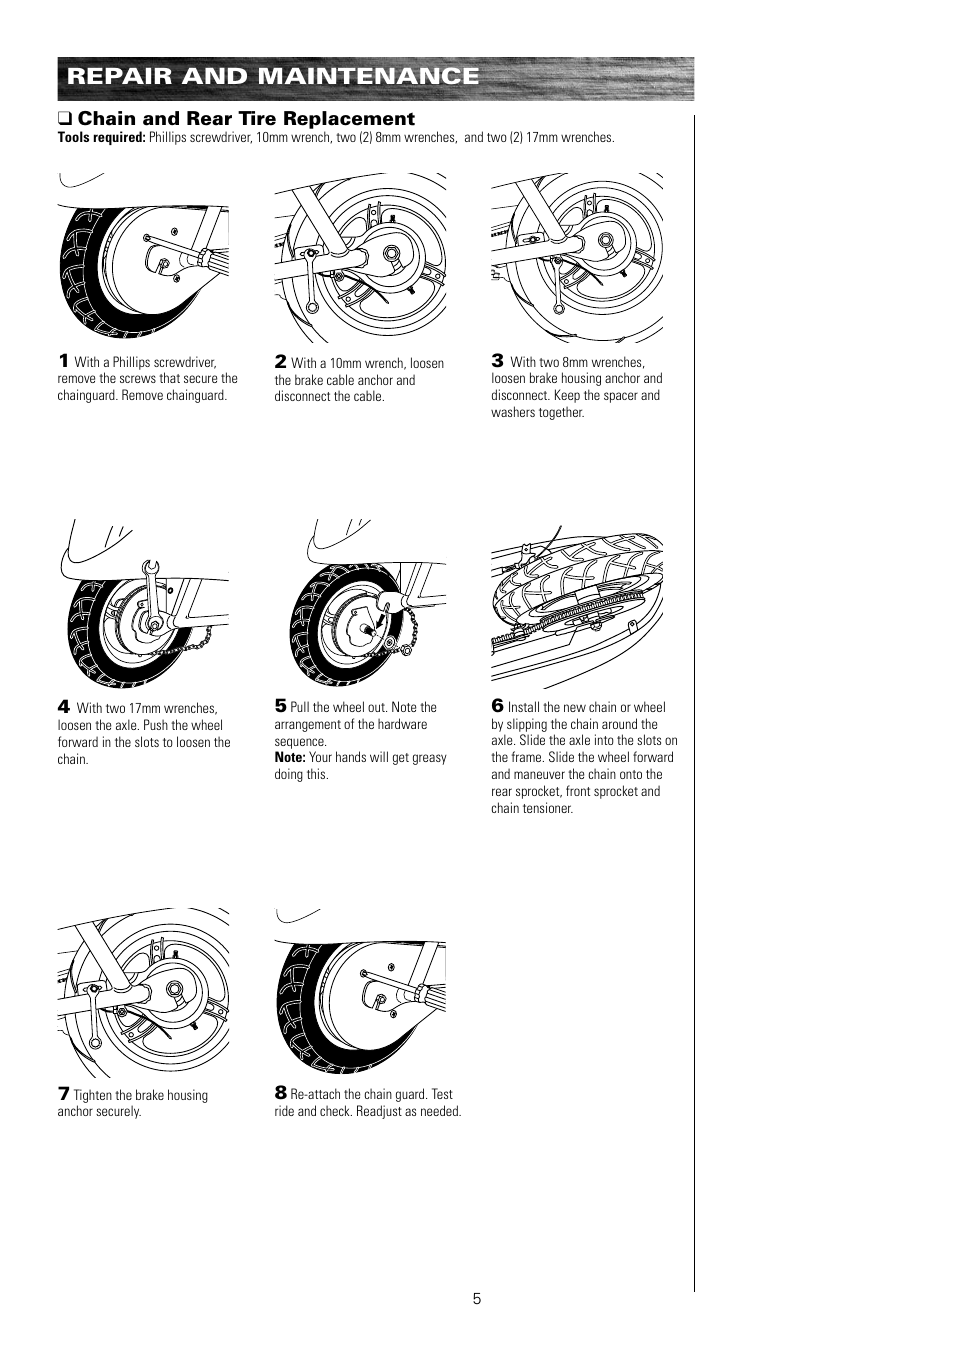 Repair and maintenance, Chain and rear tire replacement